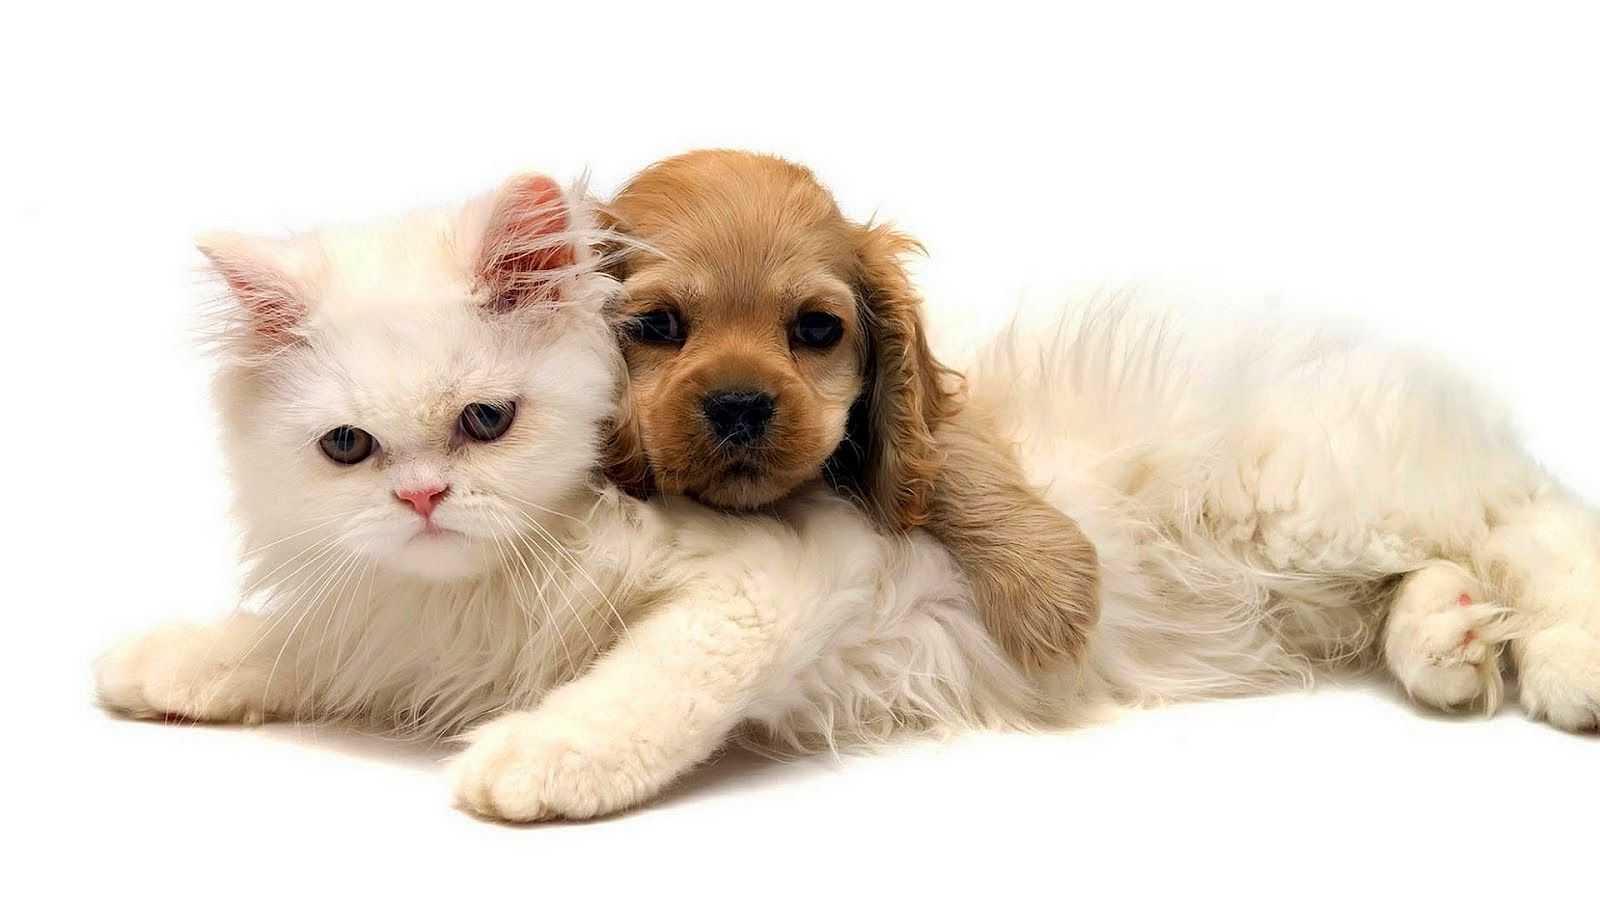 cute cats and dogs pictures HD animal wallpaper of a cat